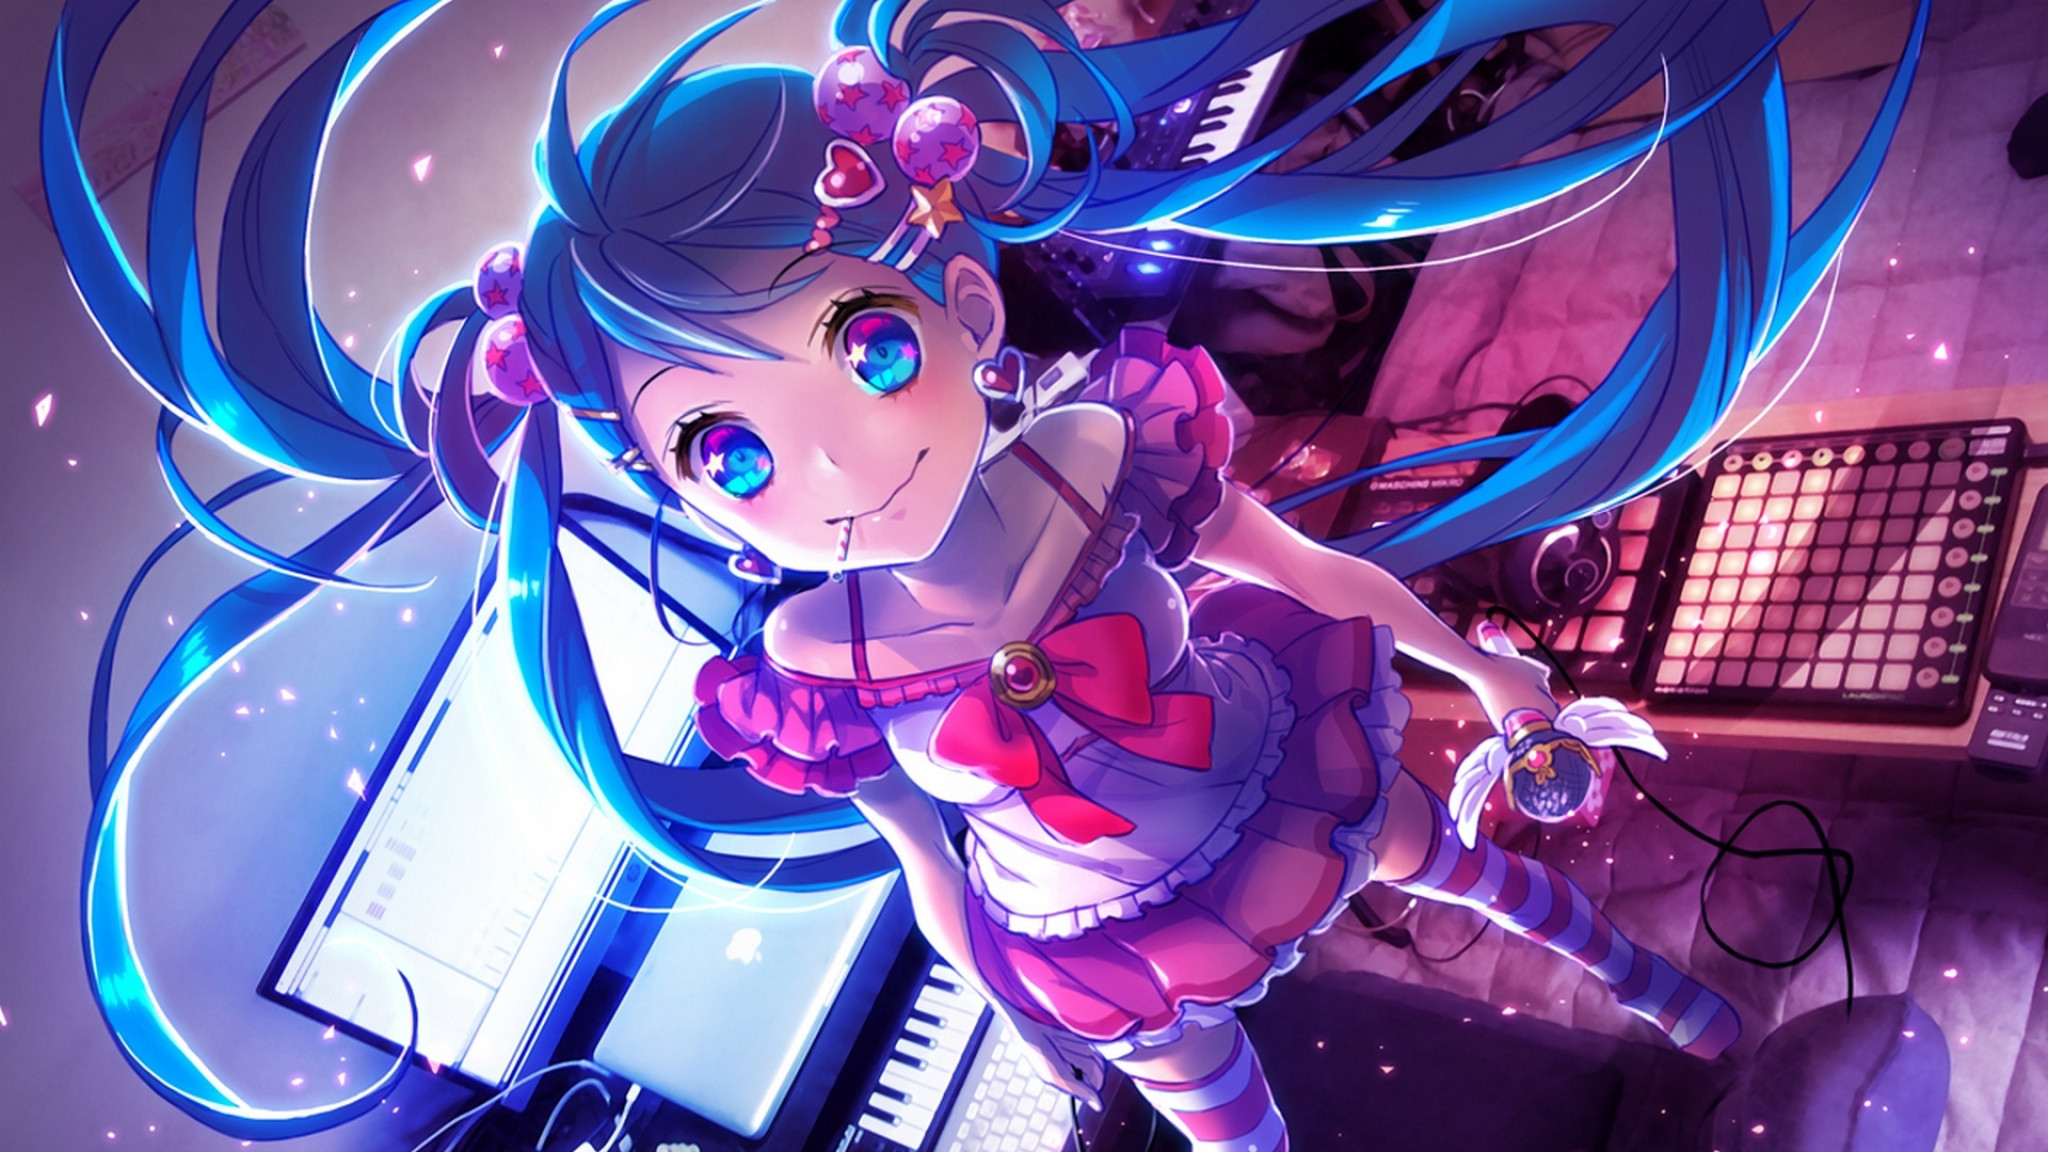 2048x1152 Preview wallpaper yamori, stom, hatsune miku, vocaloid, keyboard,  synthesizer, microphone